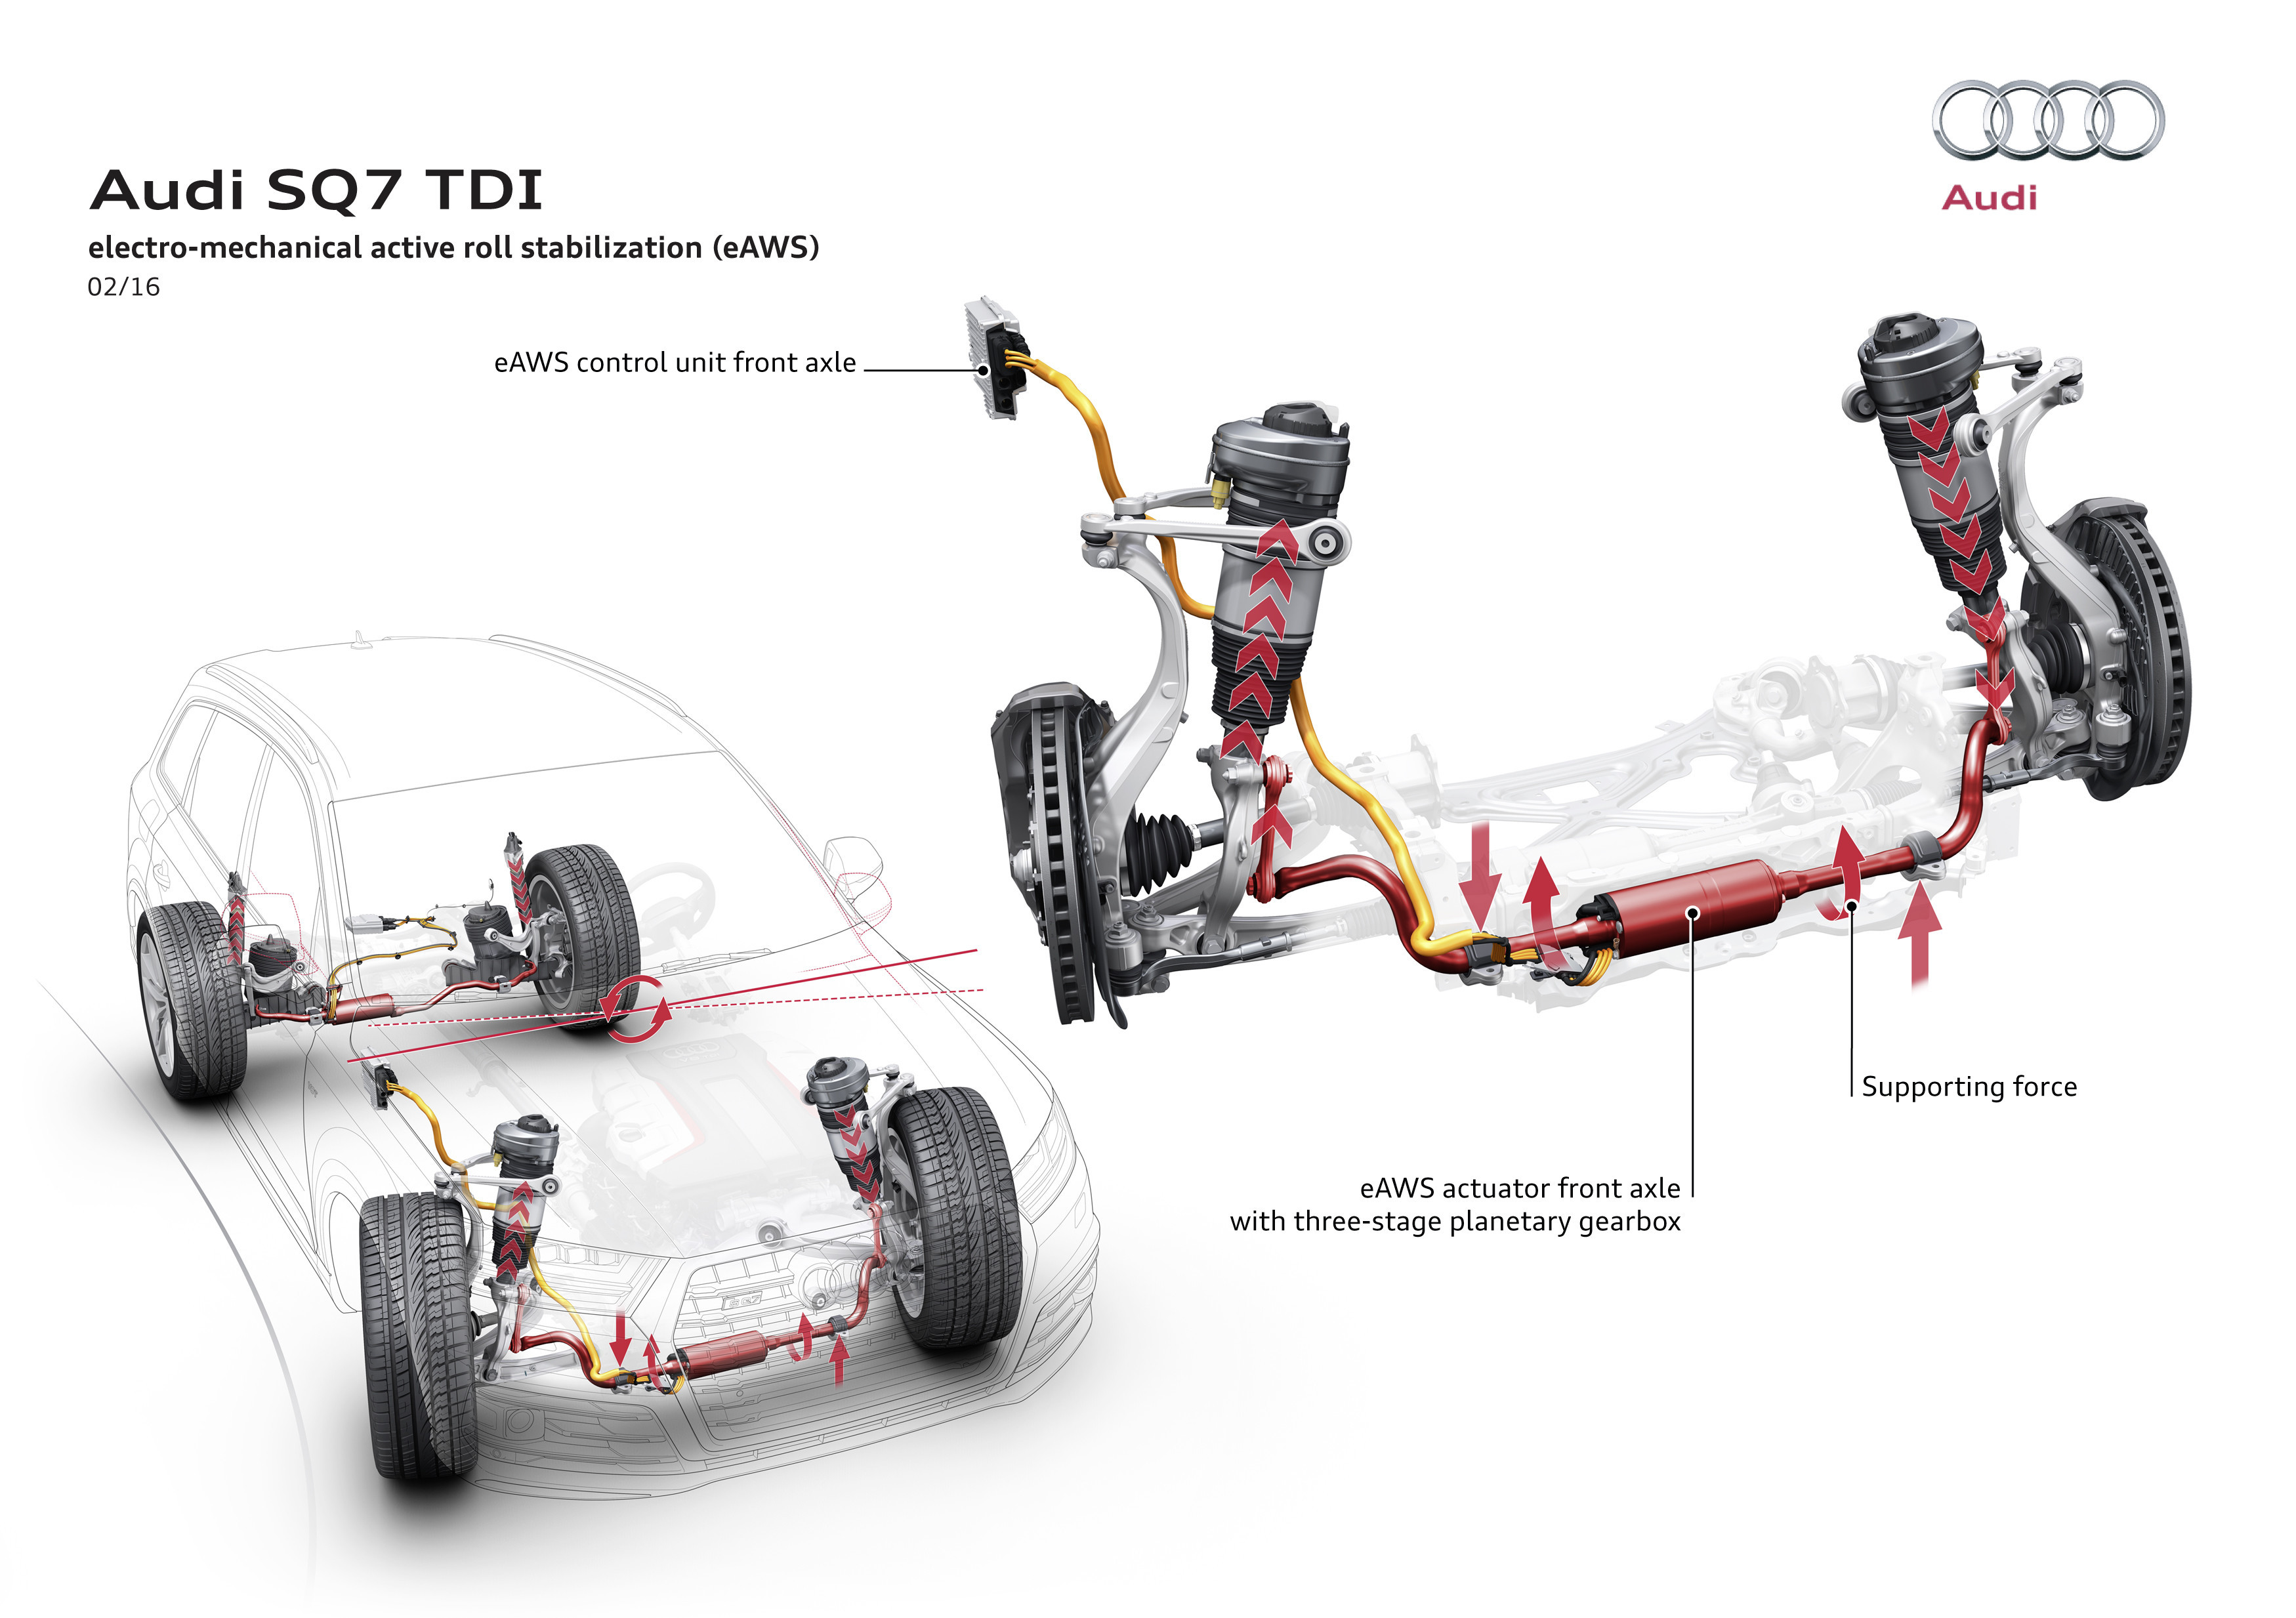 Audi electro-mechanical roll stabilisation